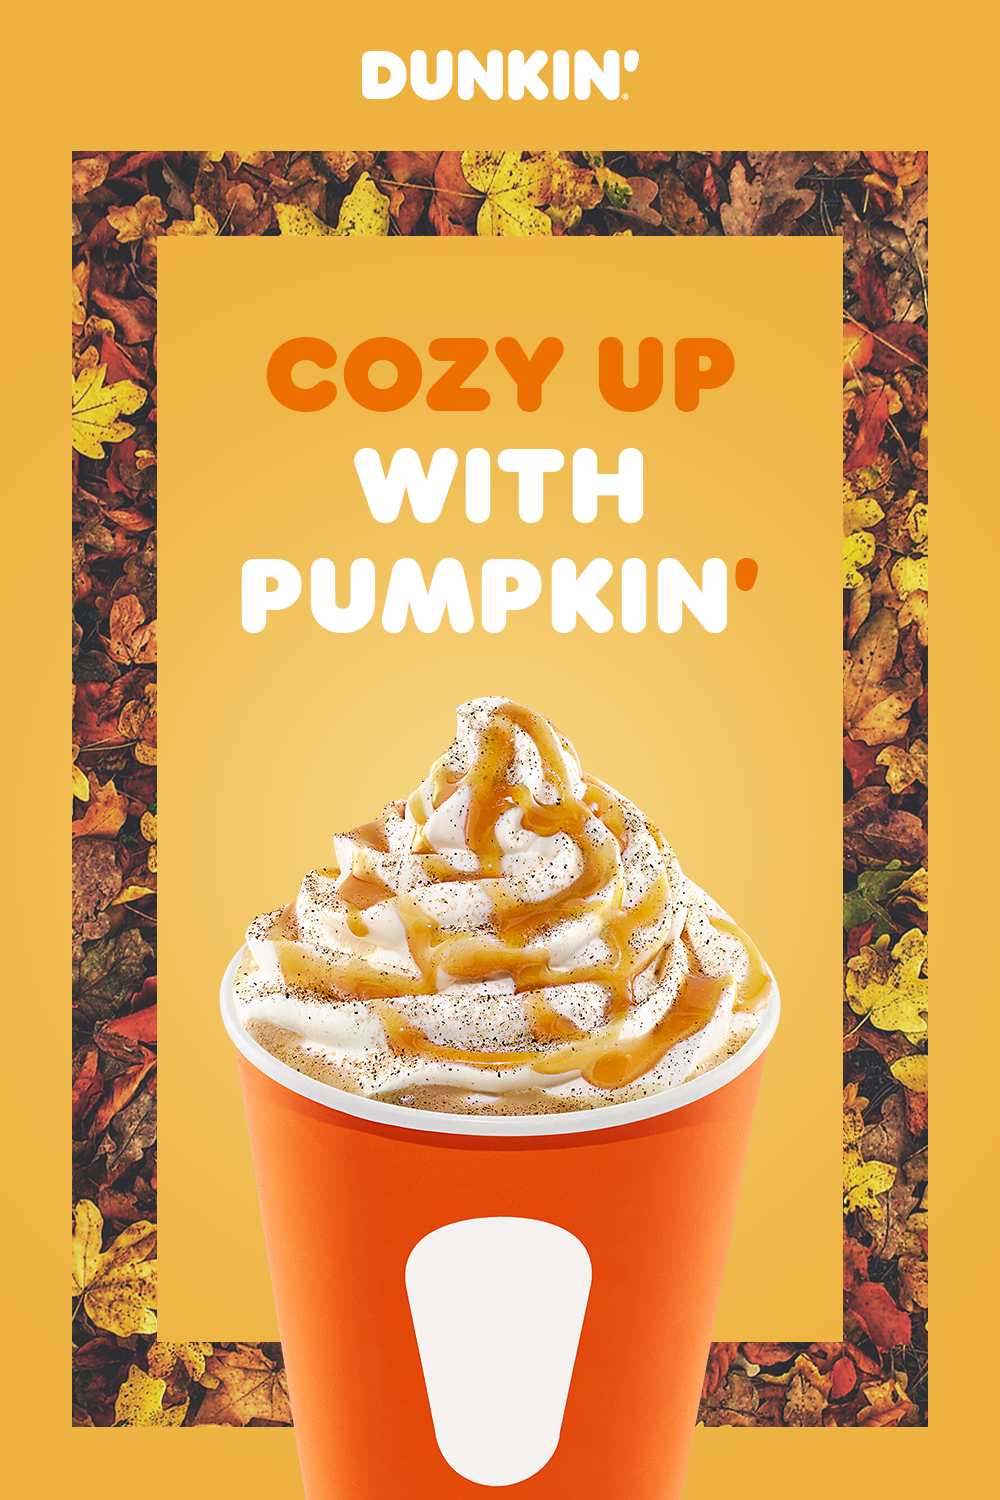 Are you getting your pumpkin' fix at Dunkin'? Check out